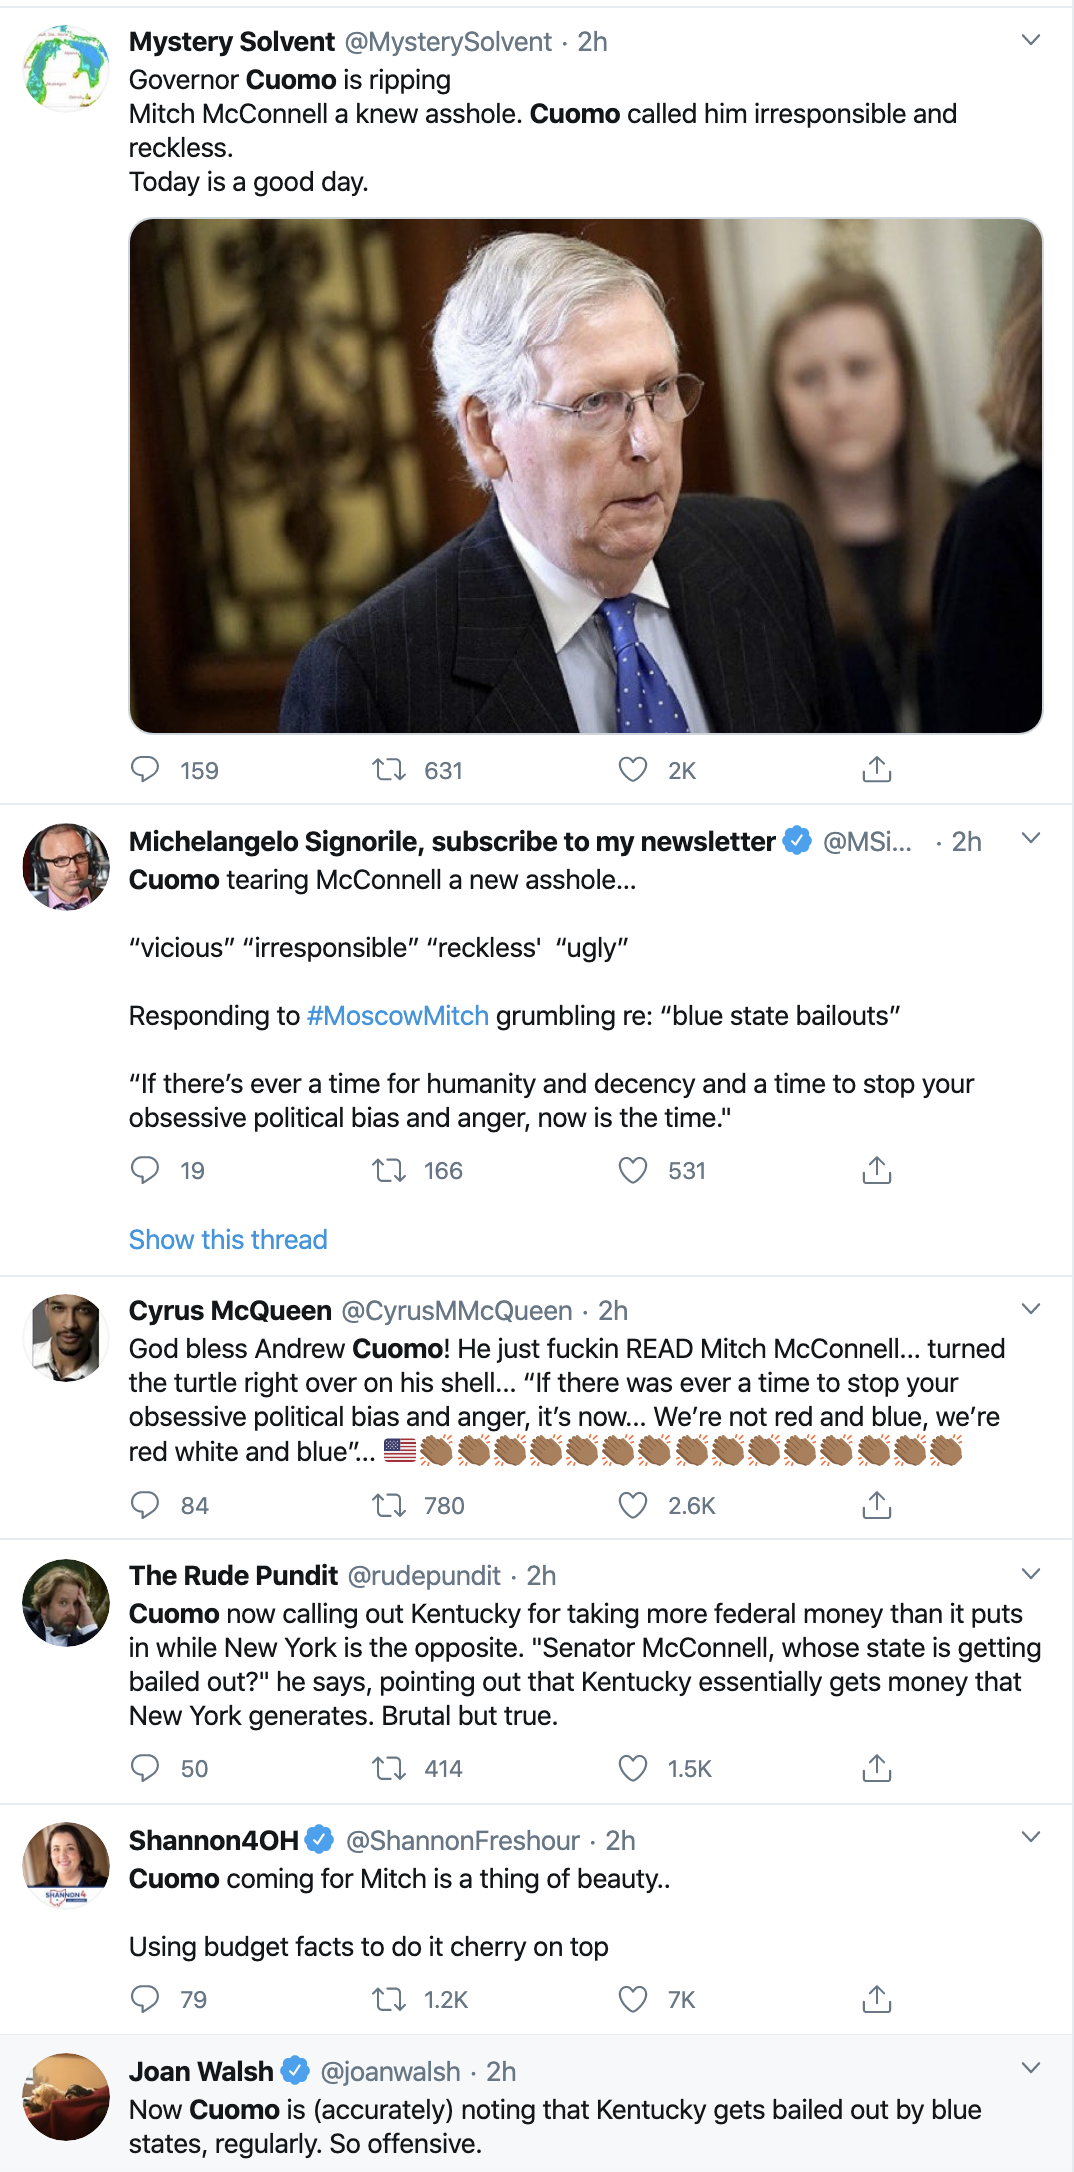 Screen-Shot-2020-04-23-at-1.18.26-PM McConnell Plans To Let States Sink Instead Of Rendering Aid Economy Featured Healthcare Politics Top Stories